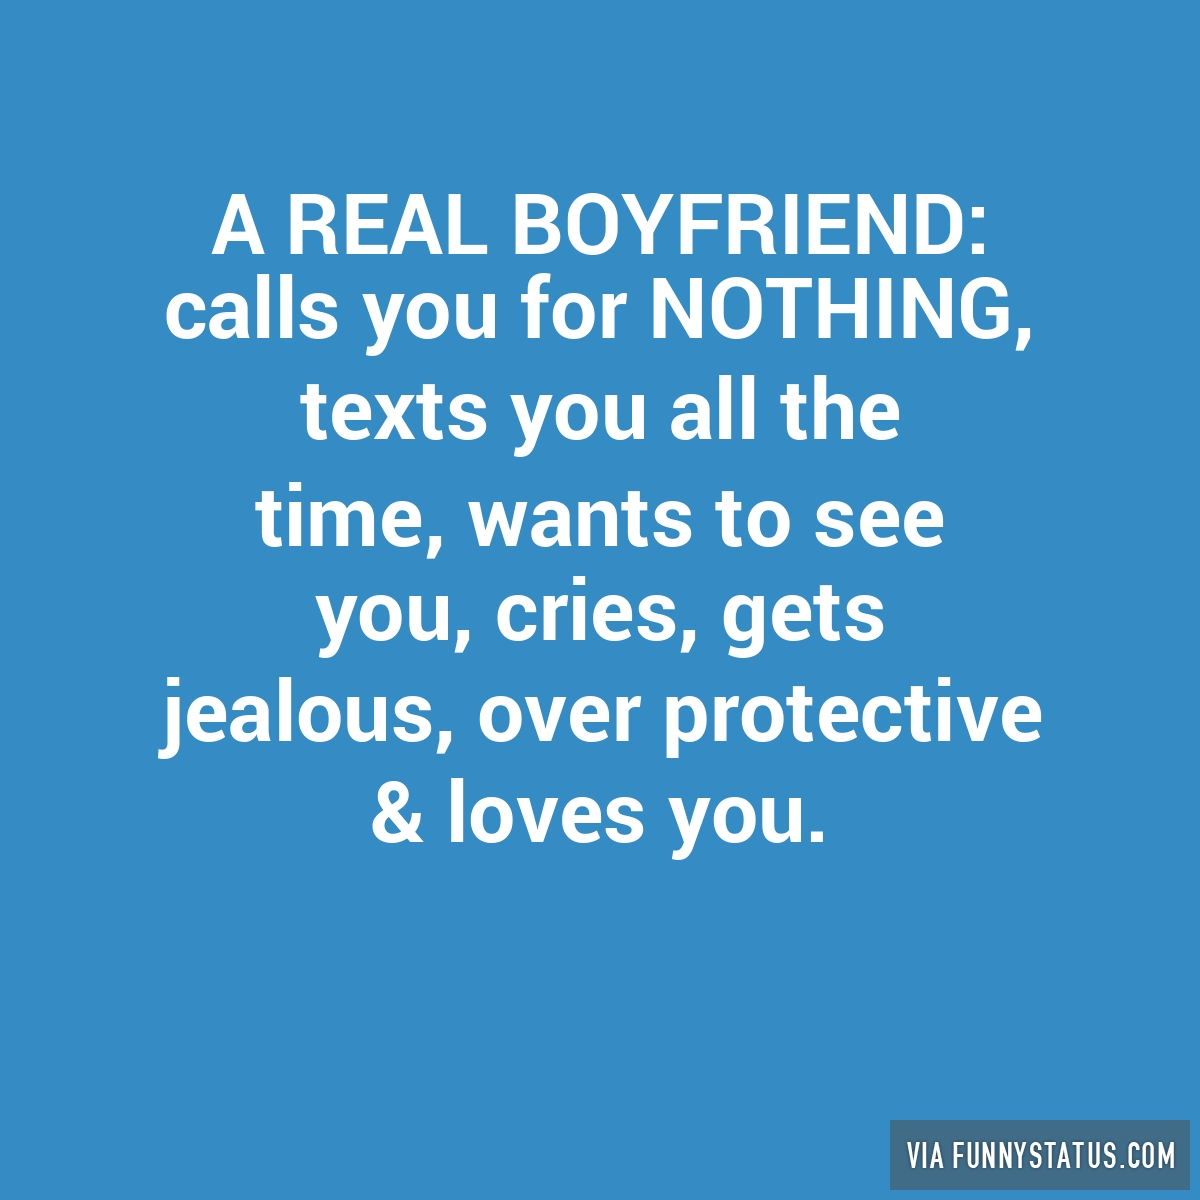 REAL BOYFRIEND: calls you for NOTHING, texts you? - Funny Status